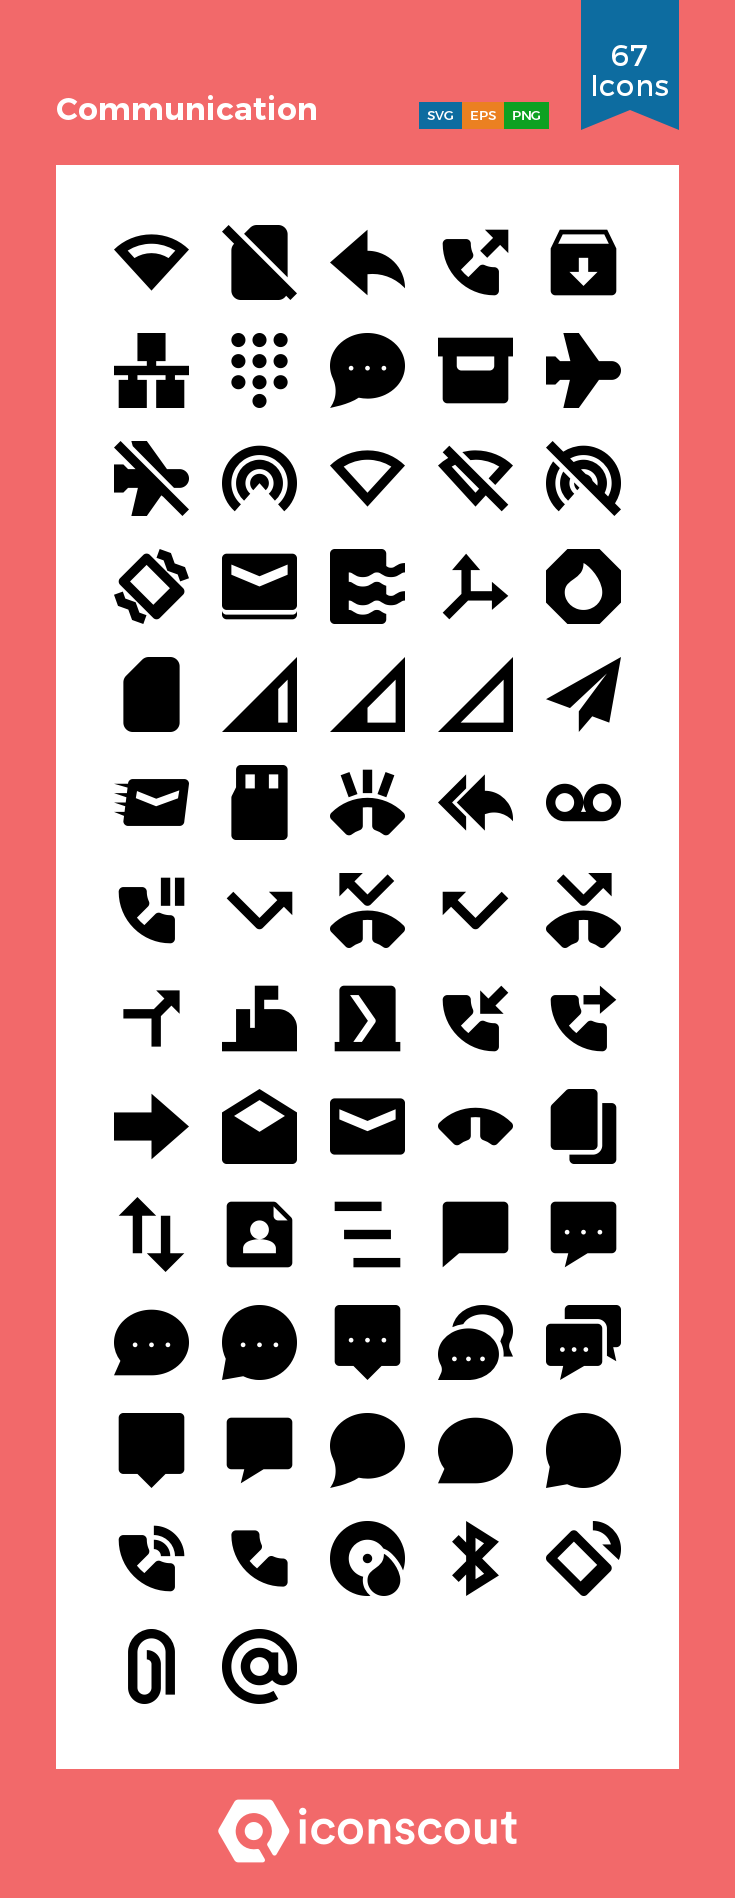 Download Communication Icon Pack Available In Svg Png Eps Ai Icon Fonts Communication Icon Glyph Icon Icon Pack